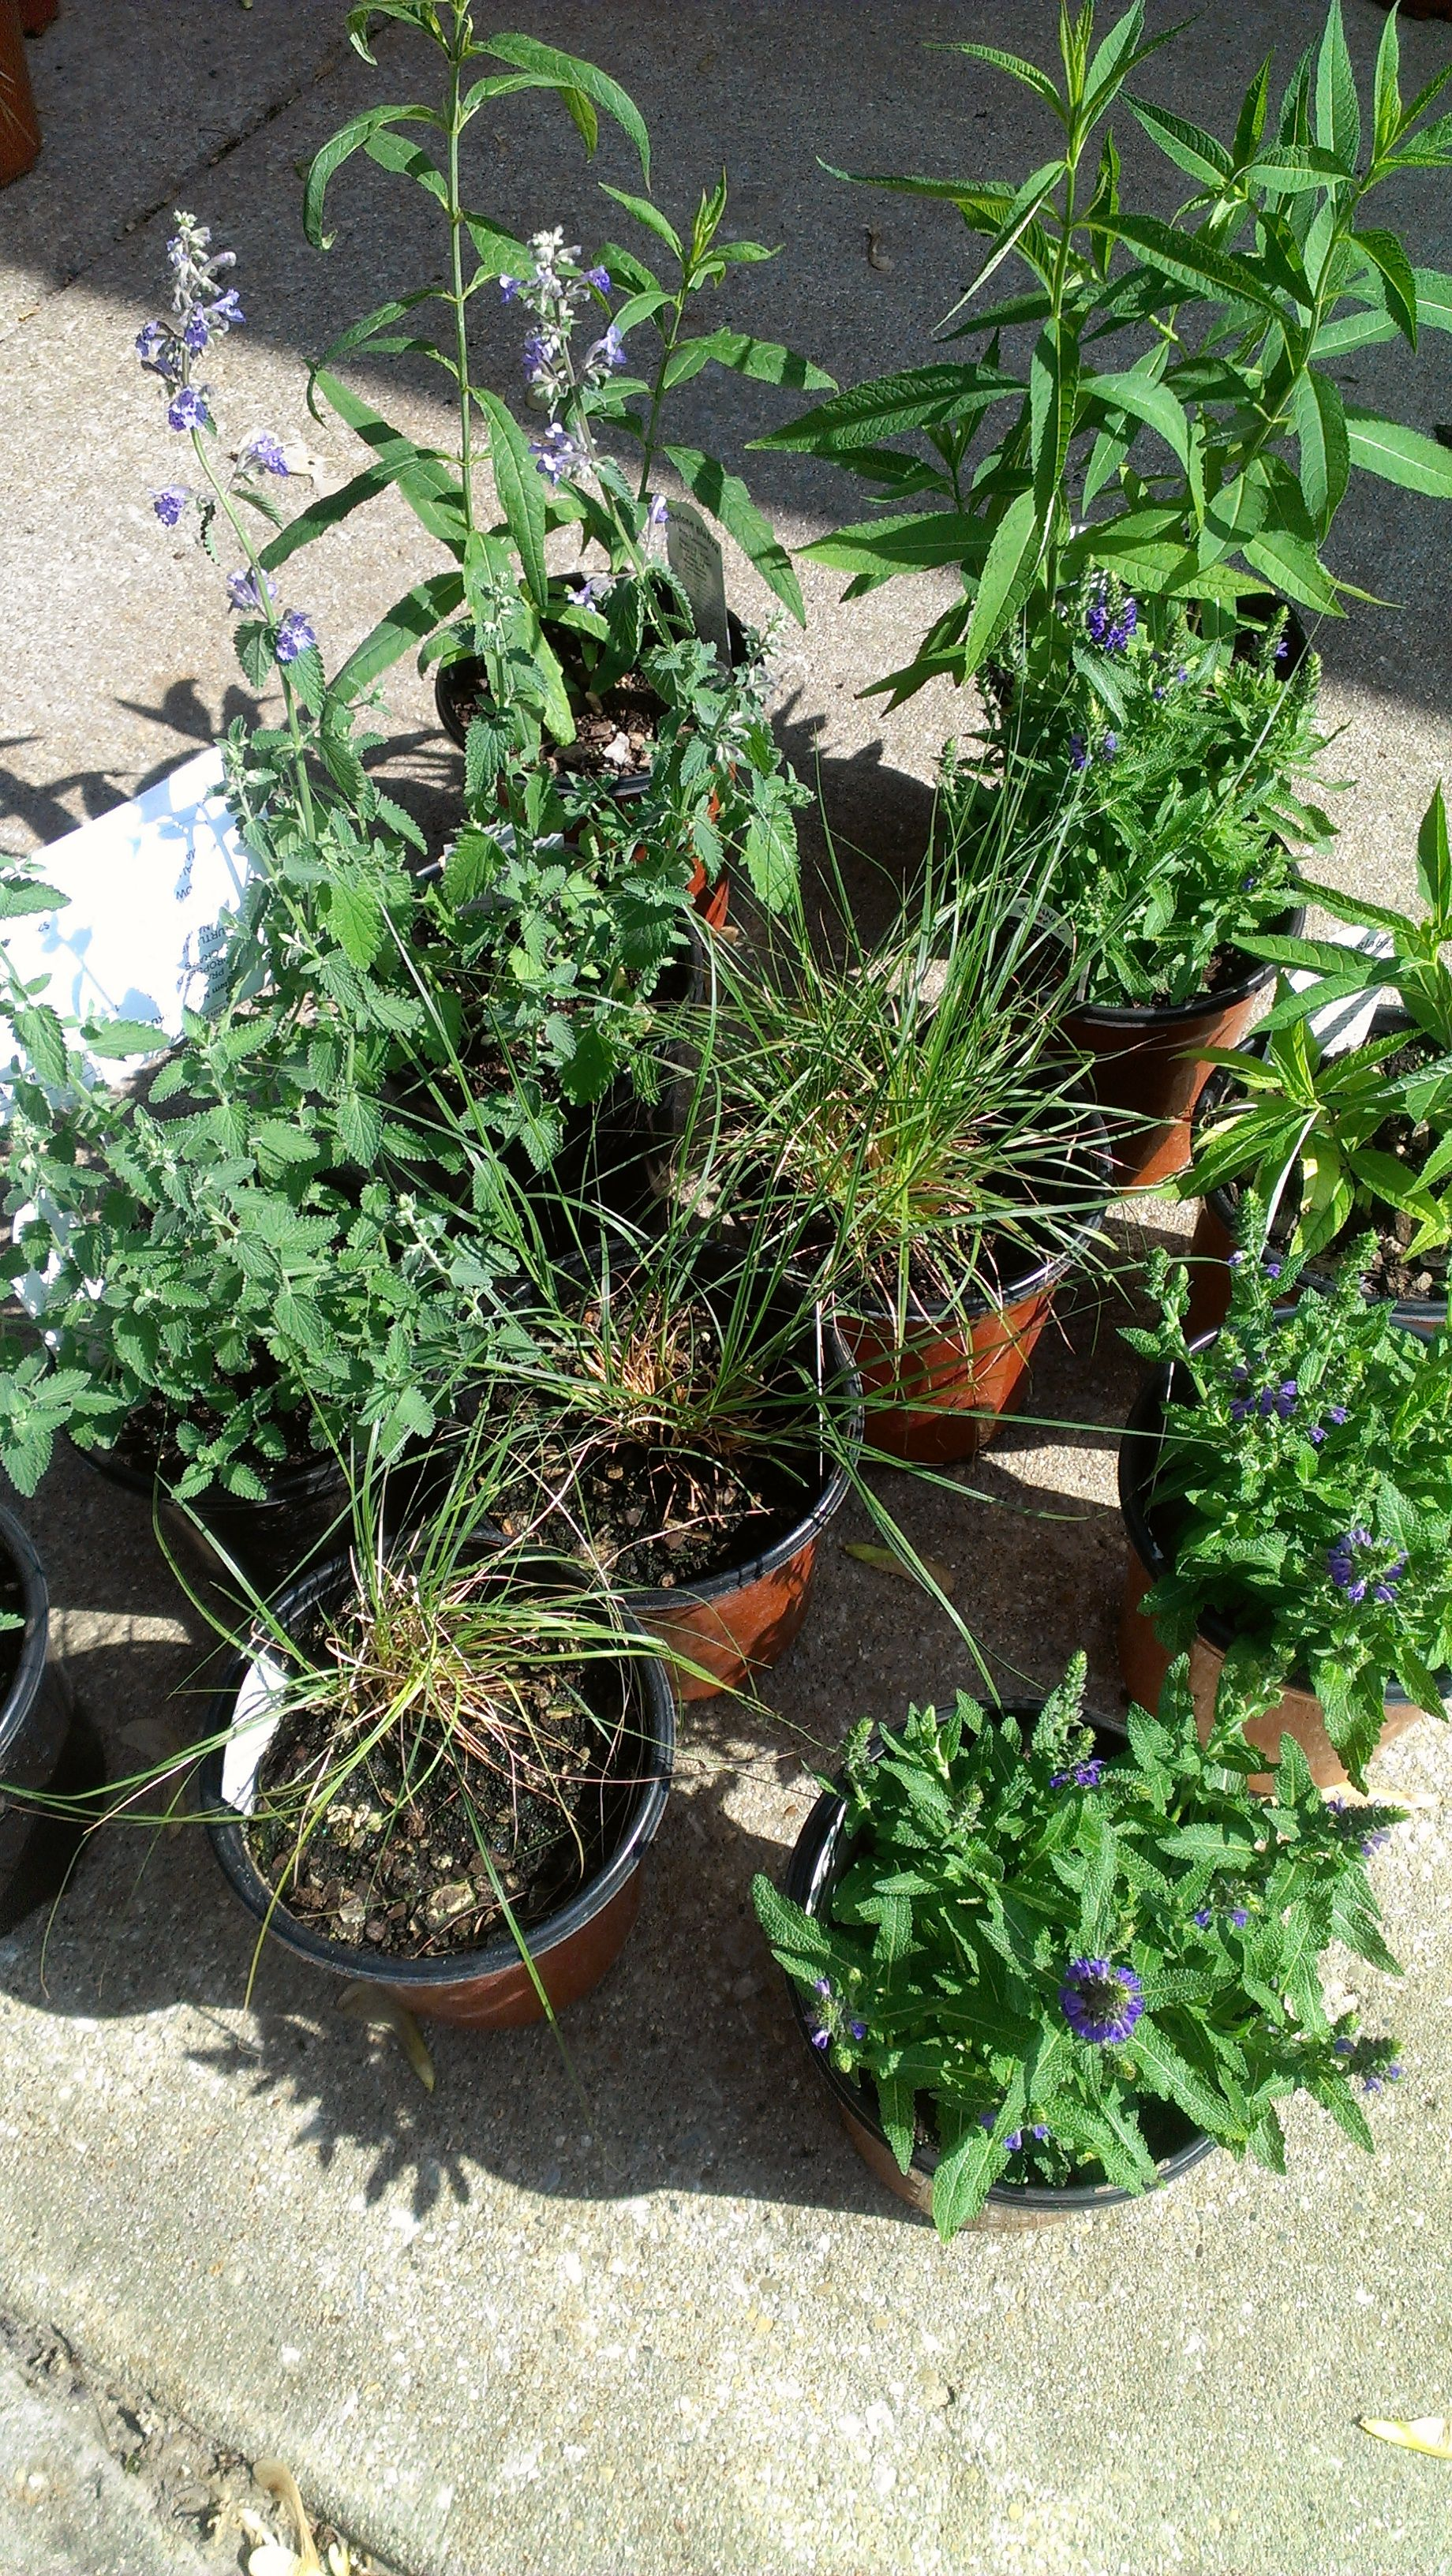 Hcba plant sale prairie godmothers at independence park for Less maintenance plants